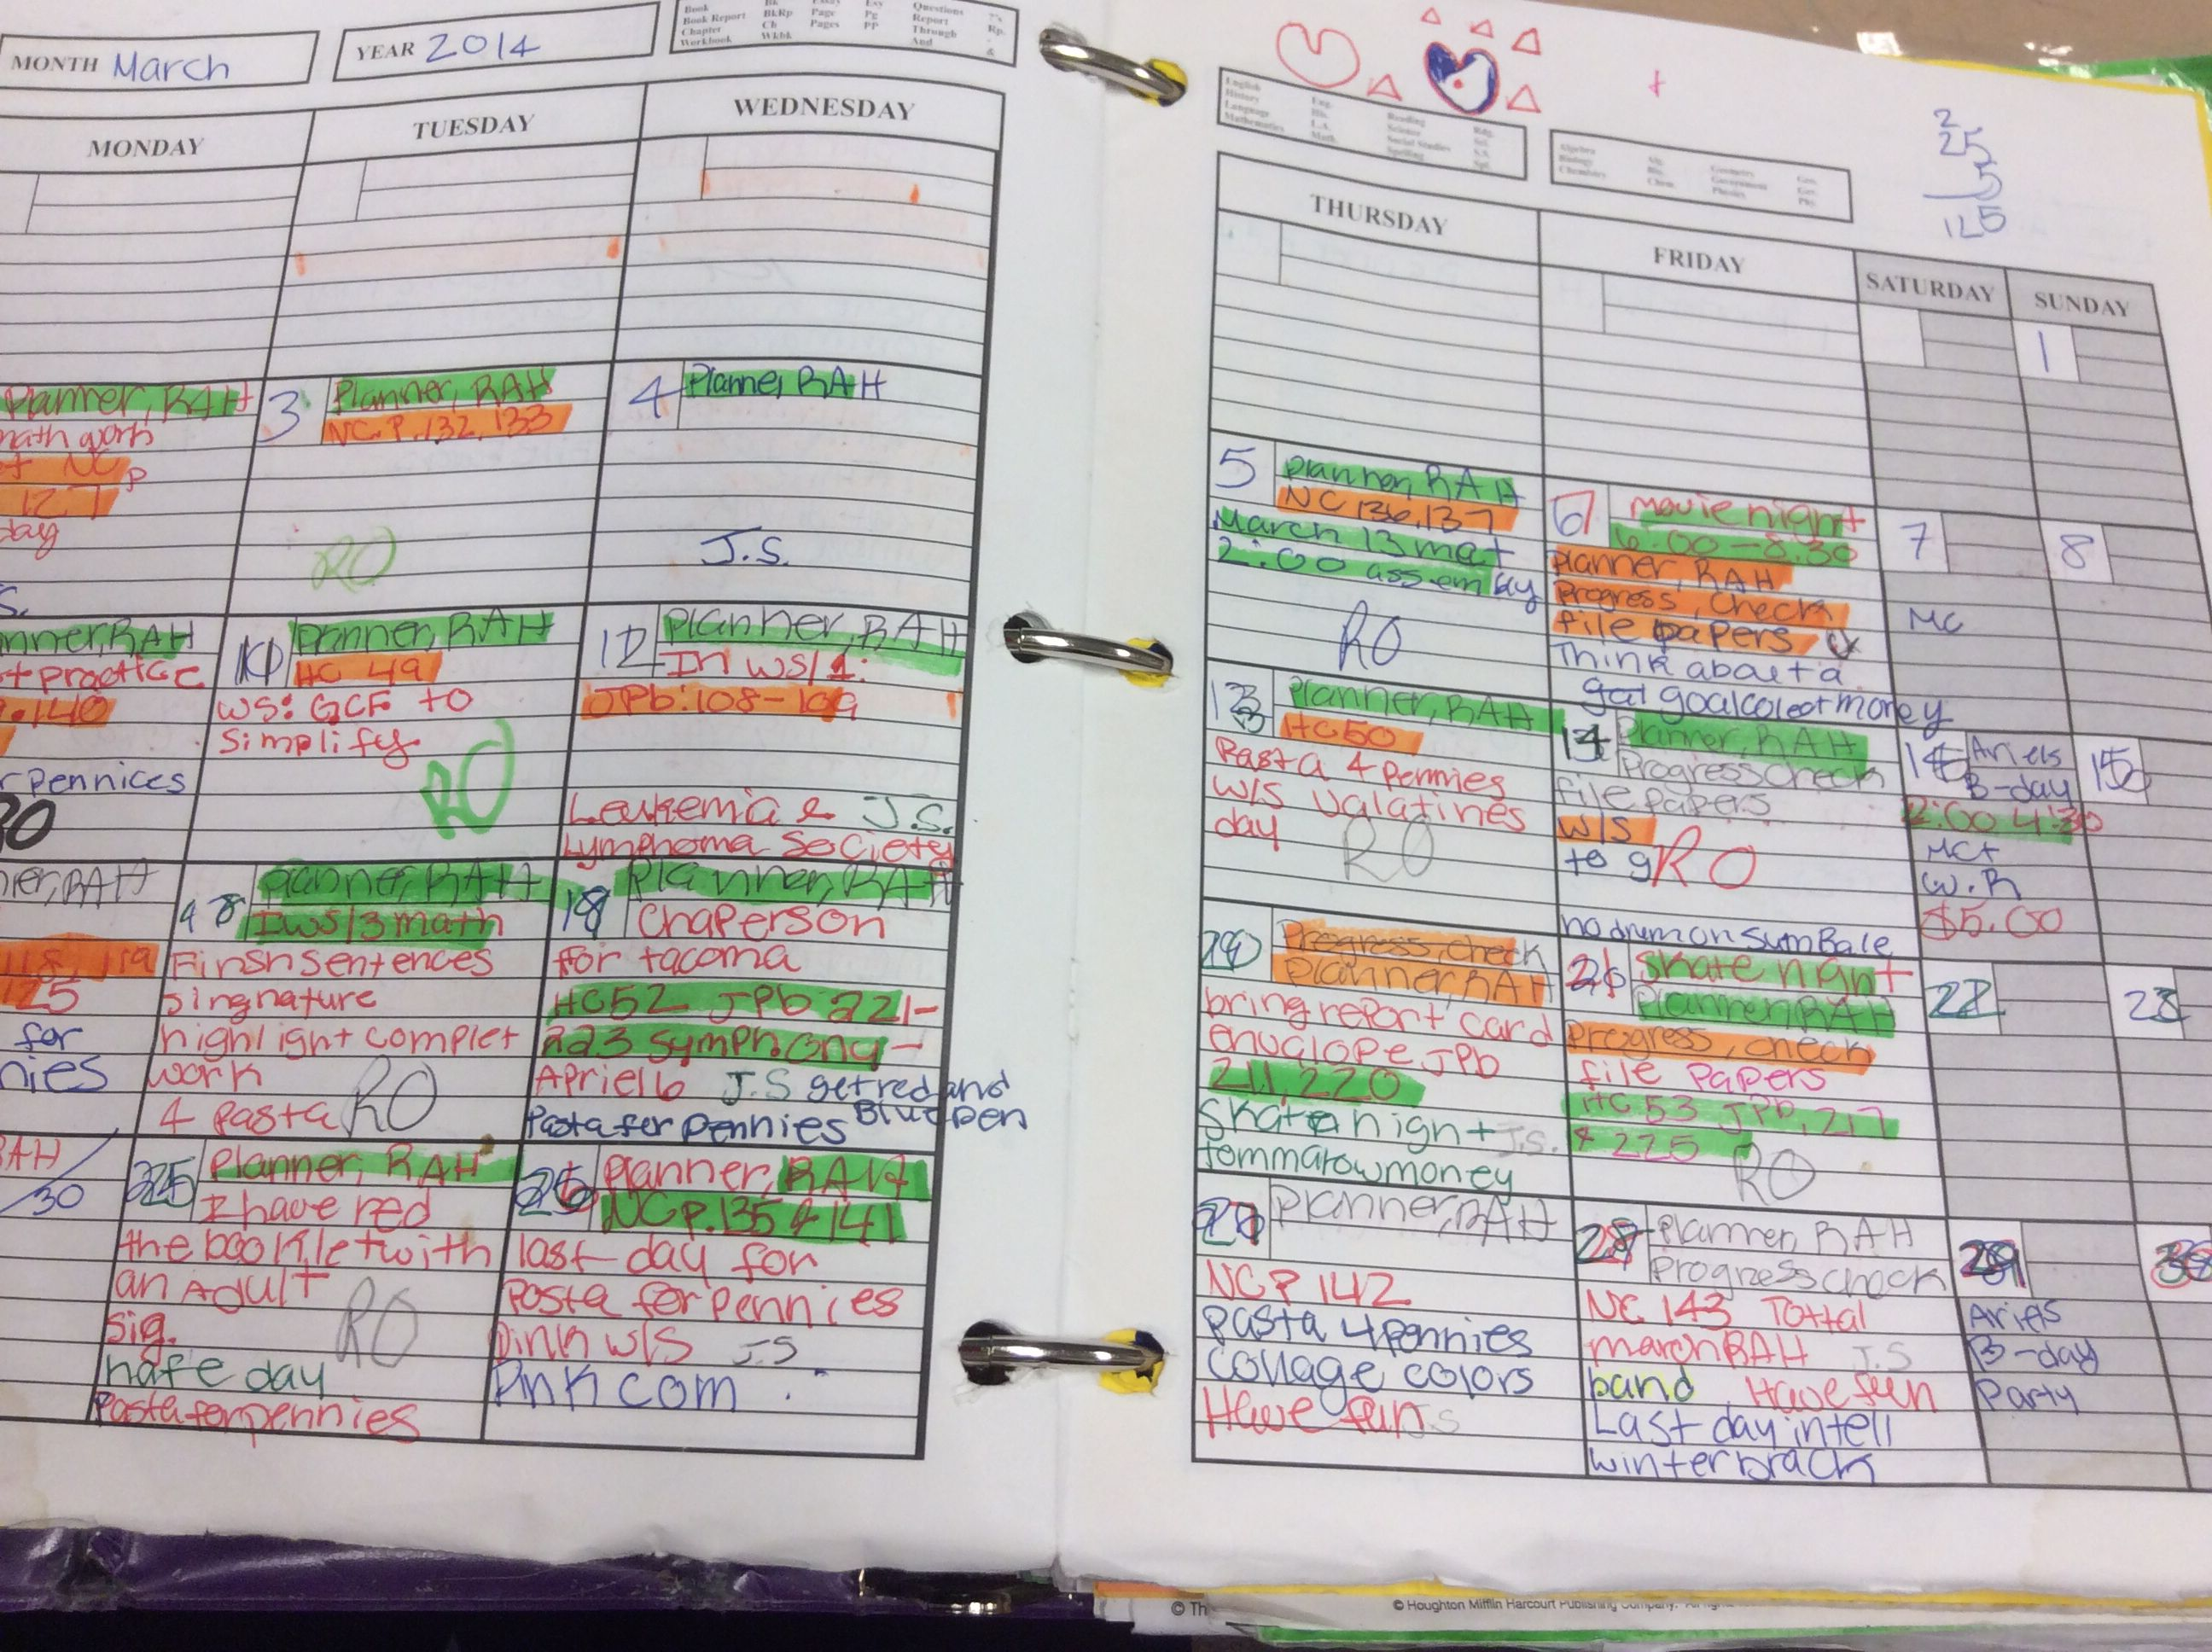 Student Planner Highlighting Strategy For What Needs To